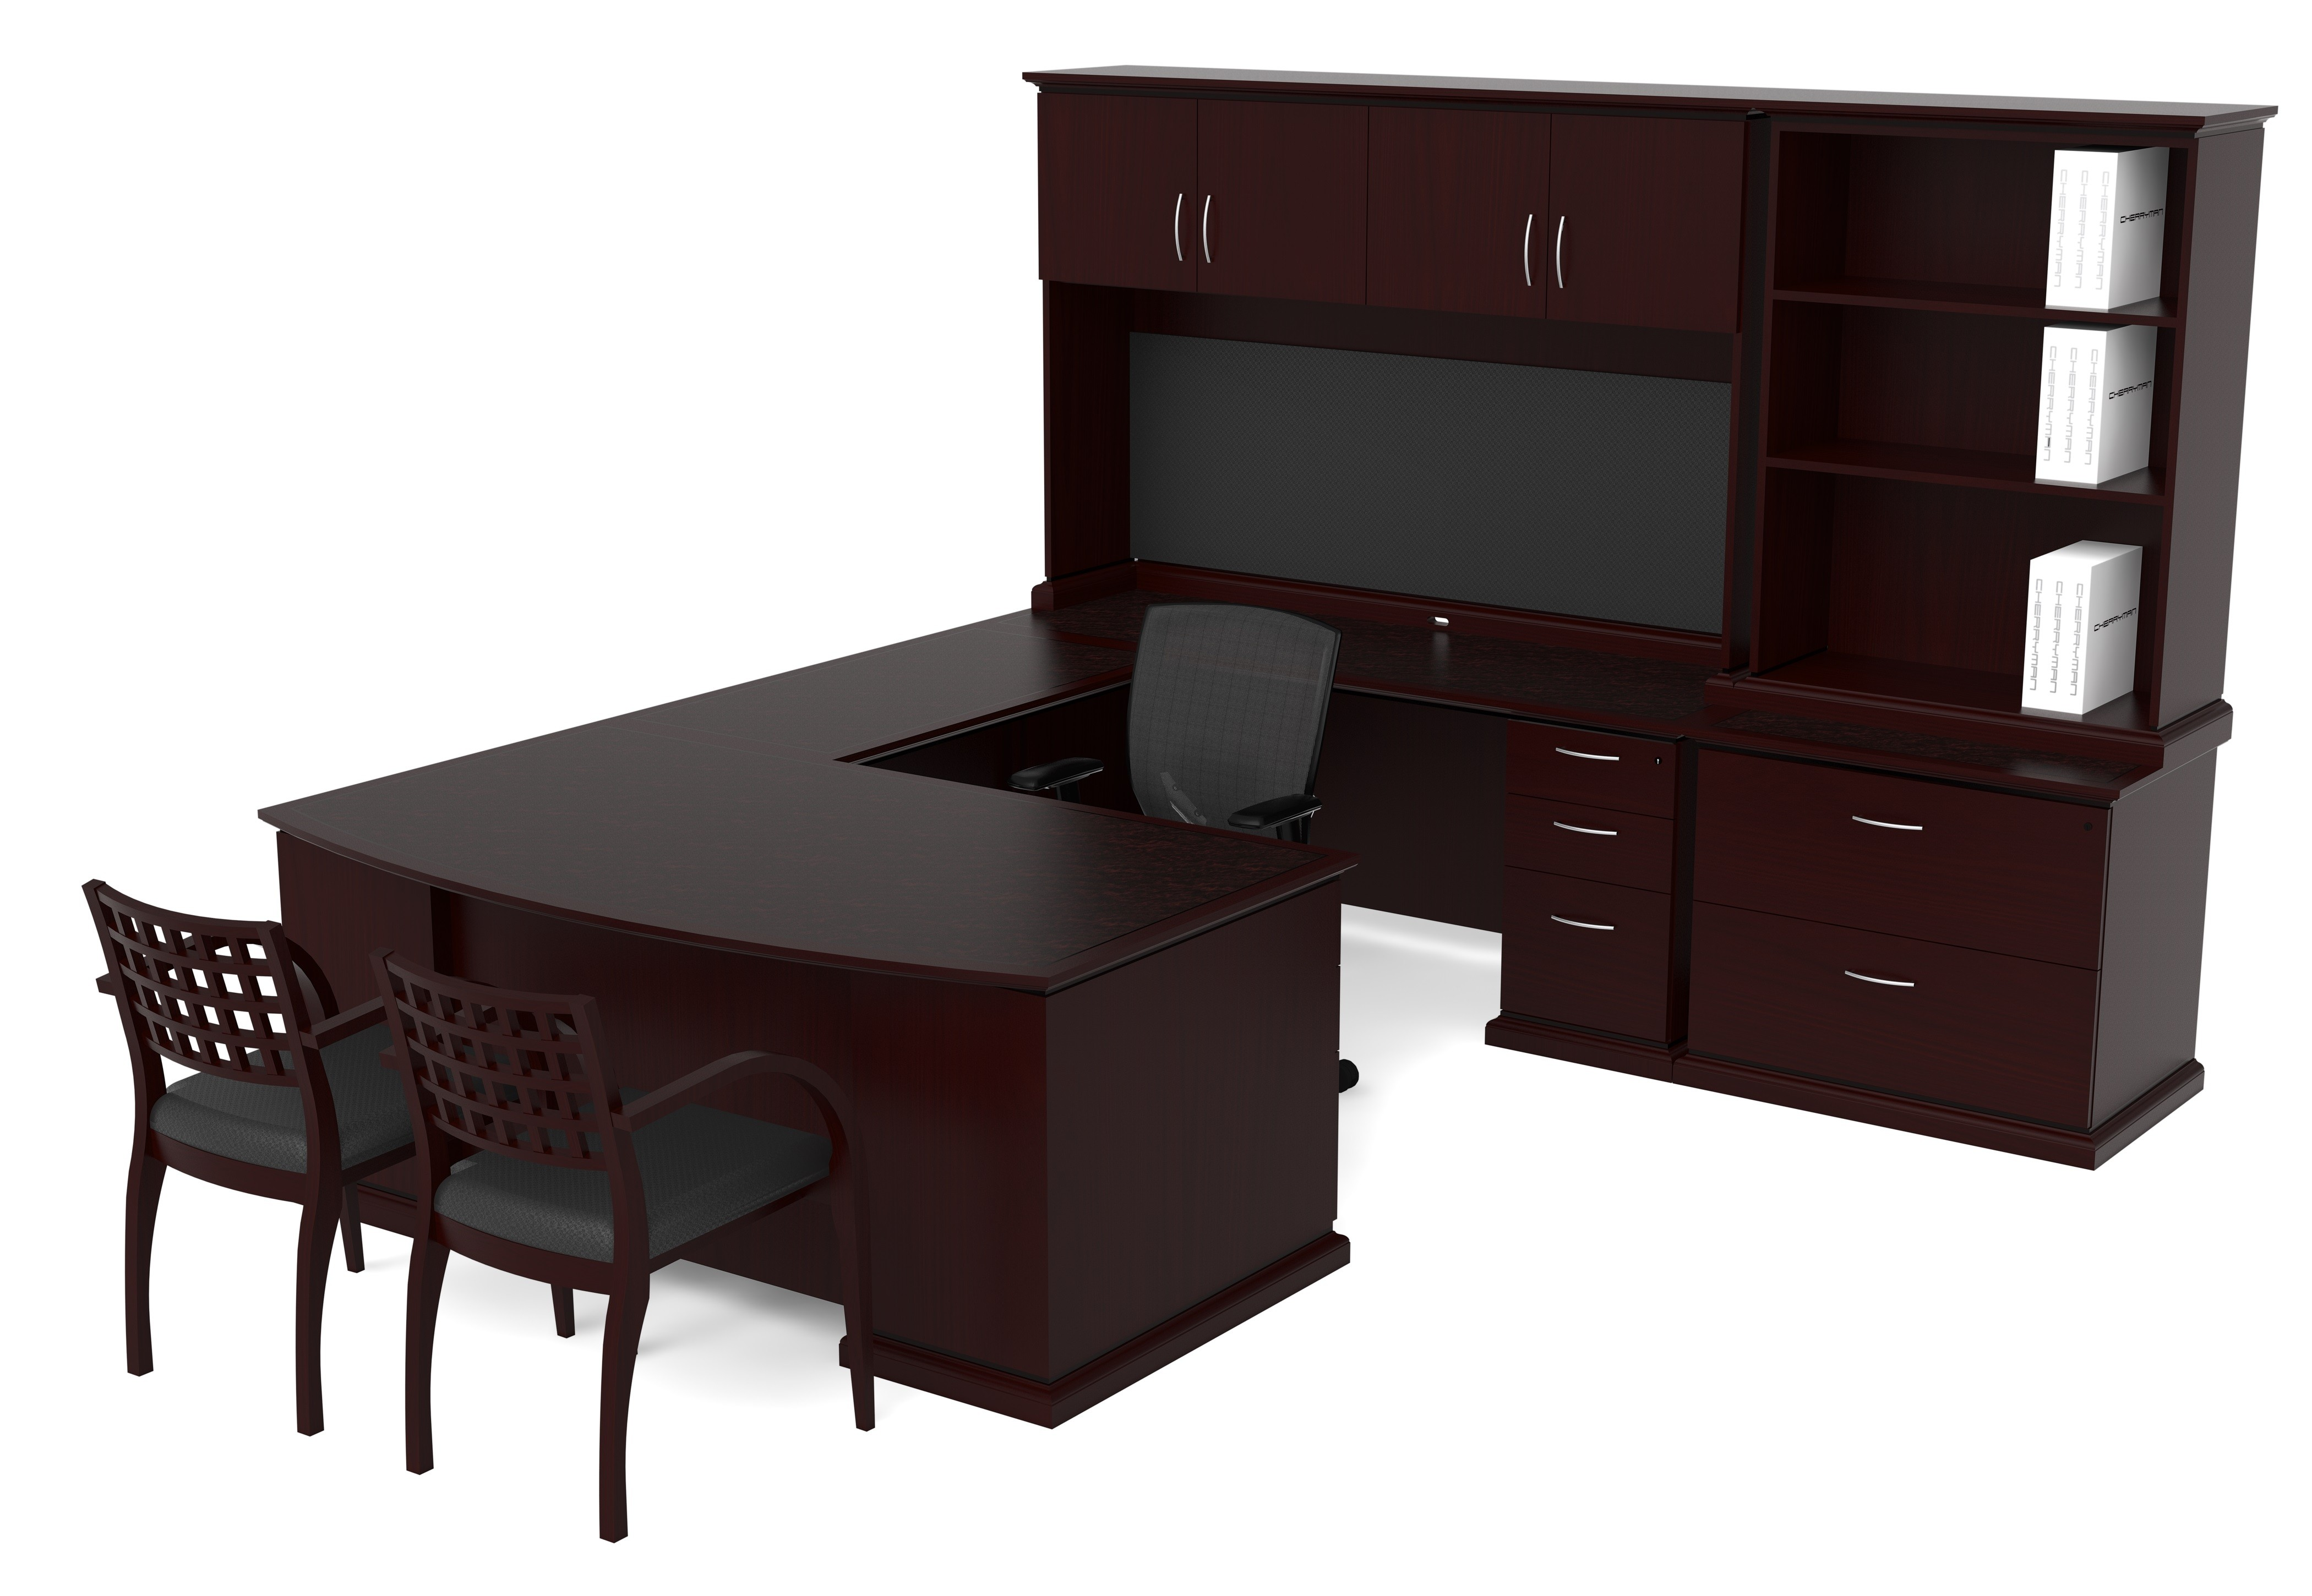 darkbrown L Shaped Desk With Hutch and drawer plus computer stand and armchair for home office furniture ideas